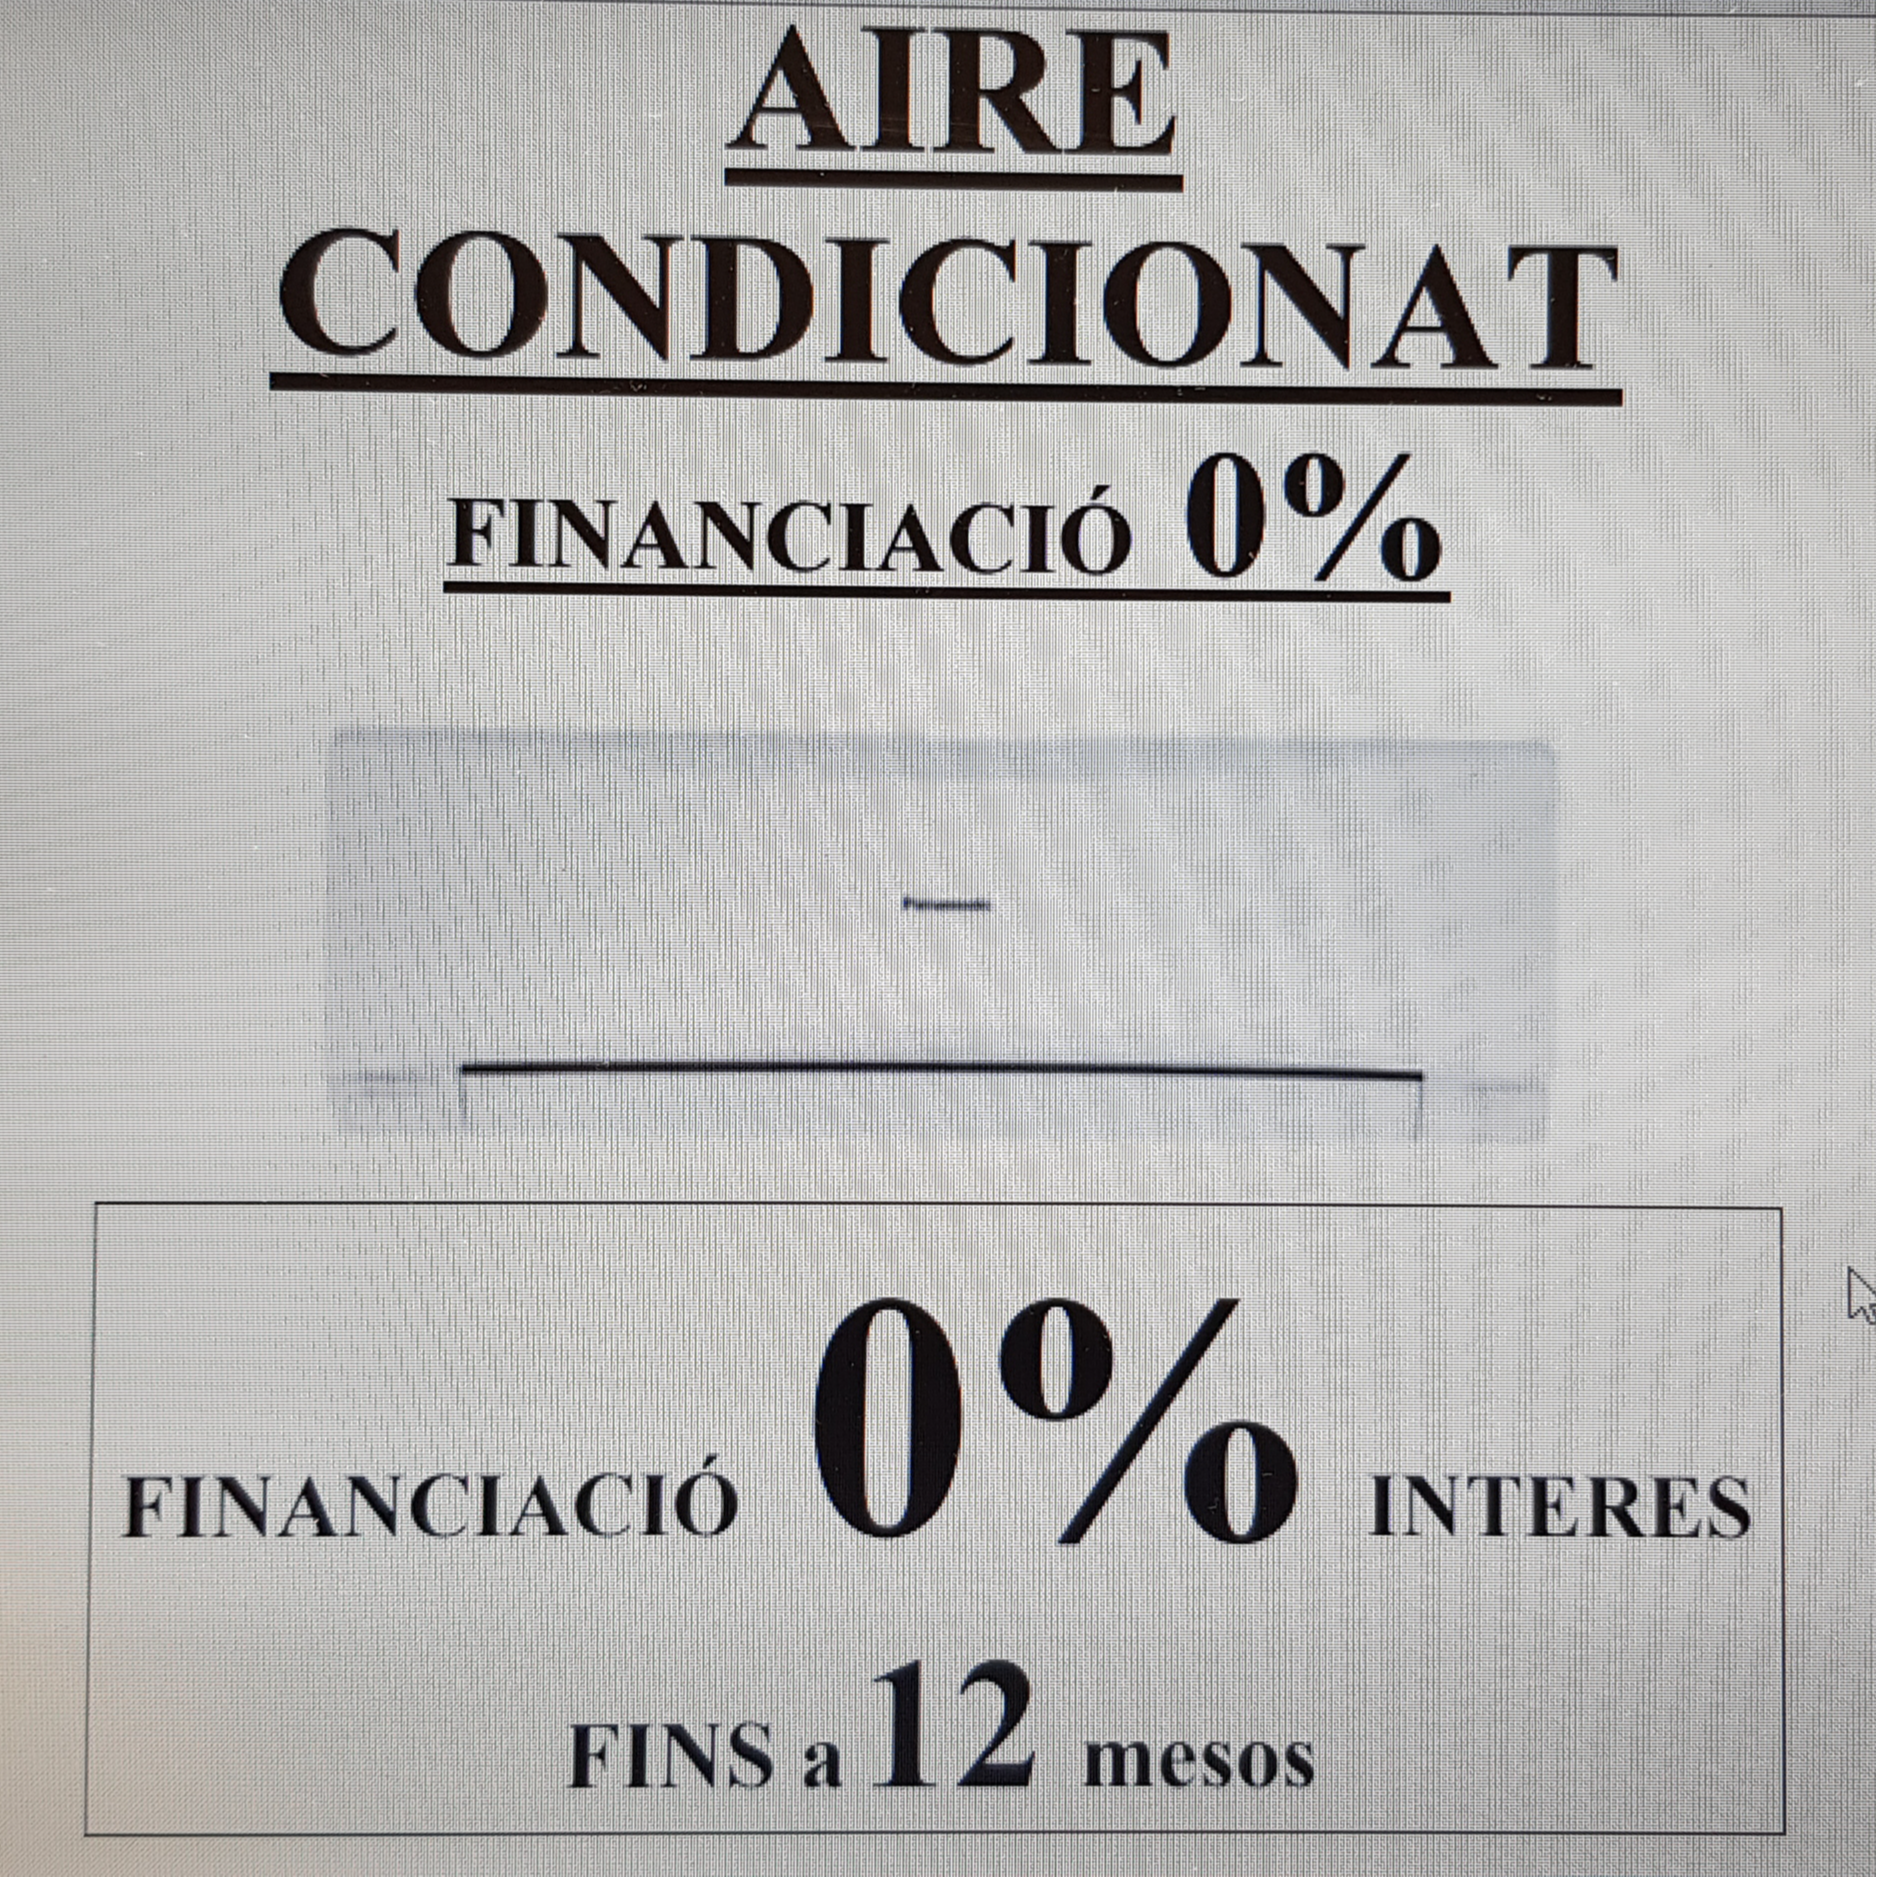 FINANCIACIÓ 0% - AIRE CONDICIONAT